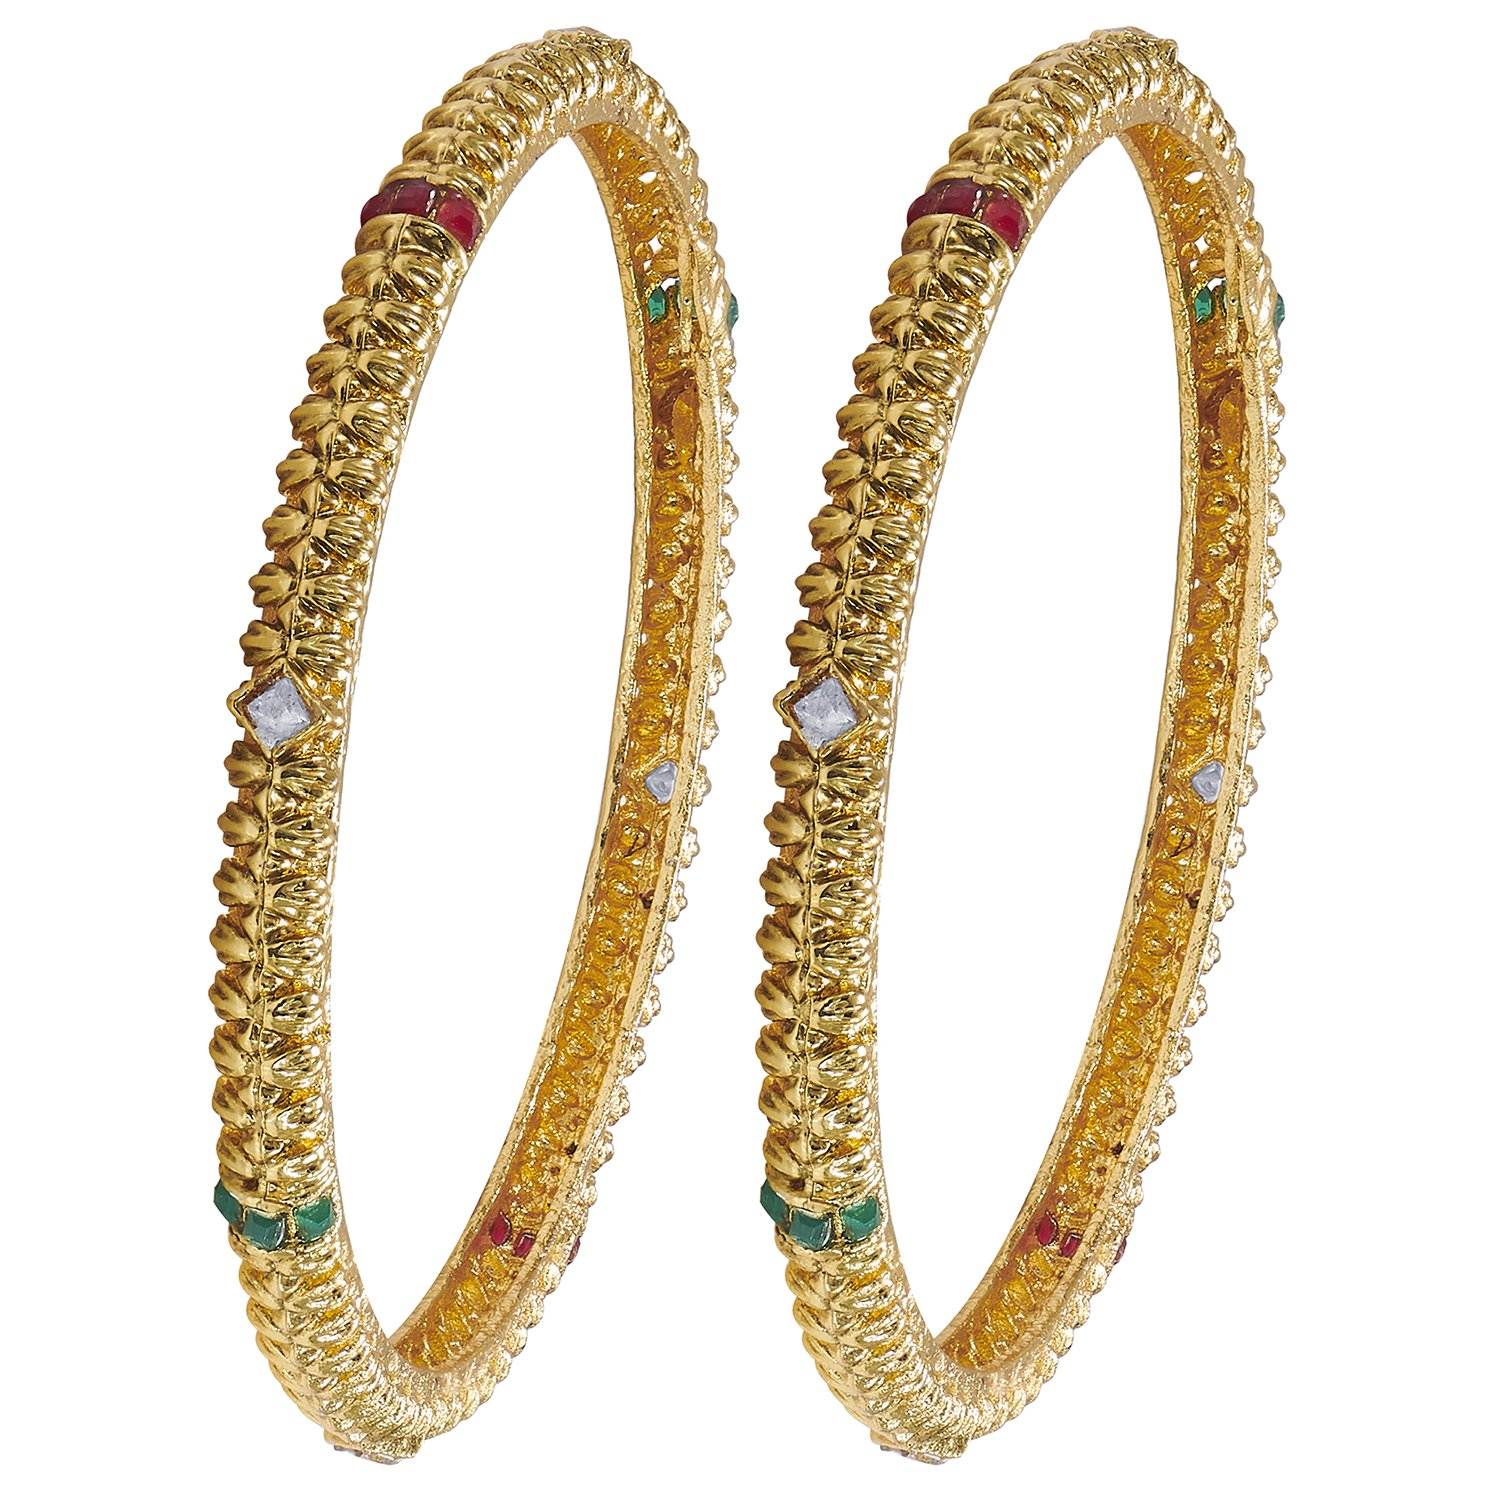 Aheli Indian Traditional Ethnic Style Golden Toned Bangle Set Encrusted with Green and Red Color Stones for Women and Girls